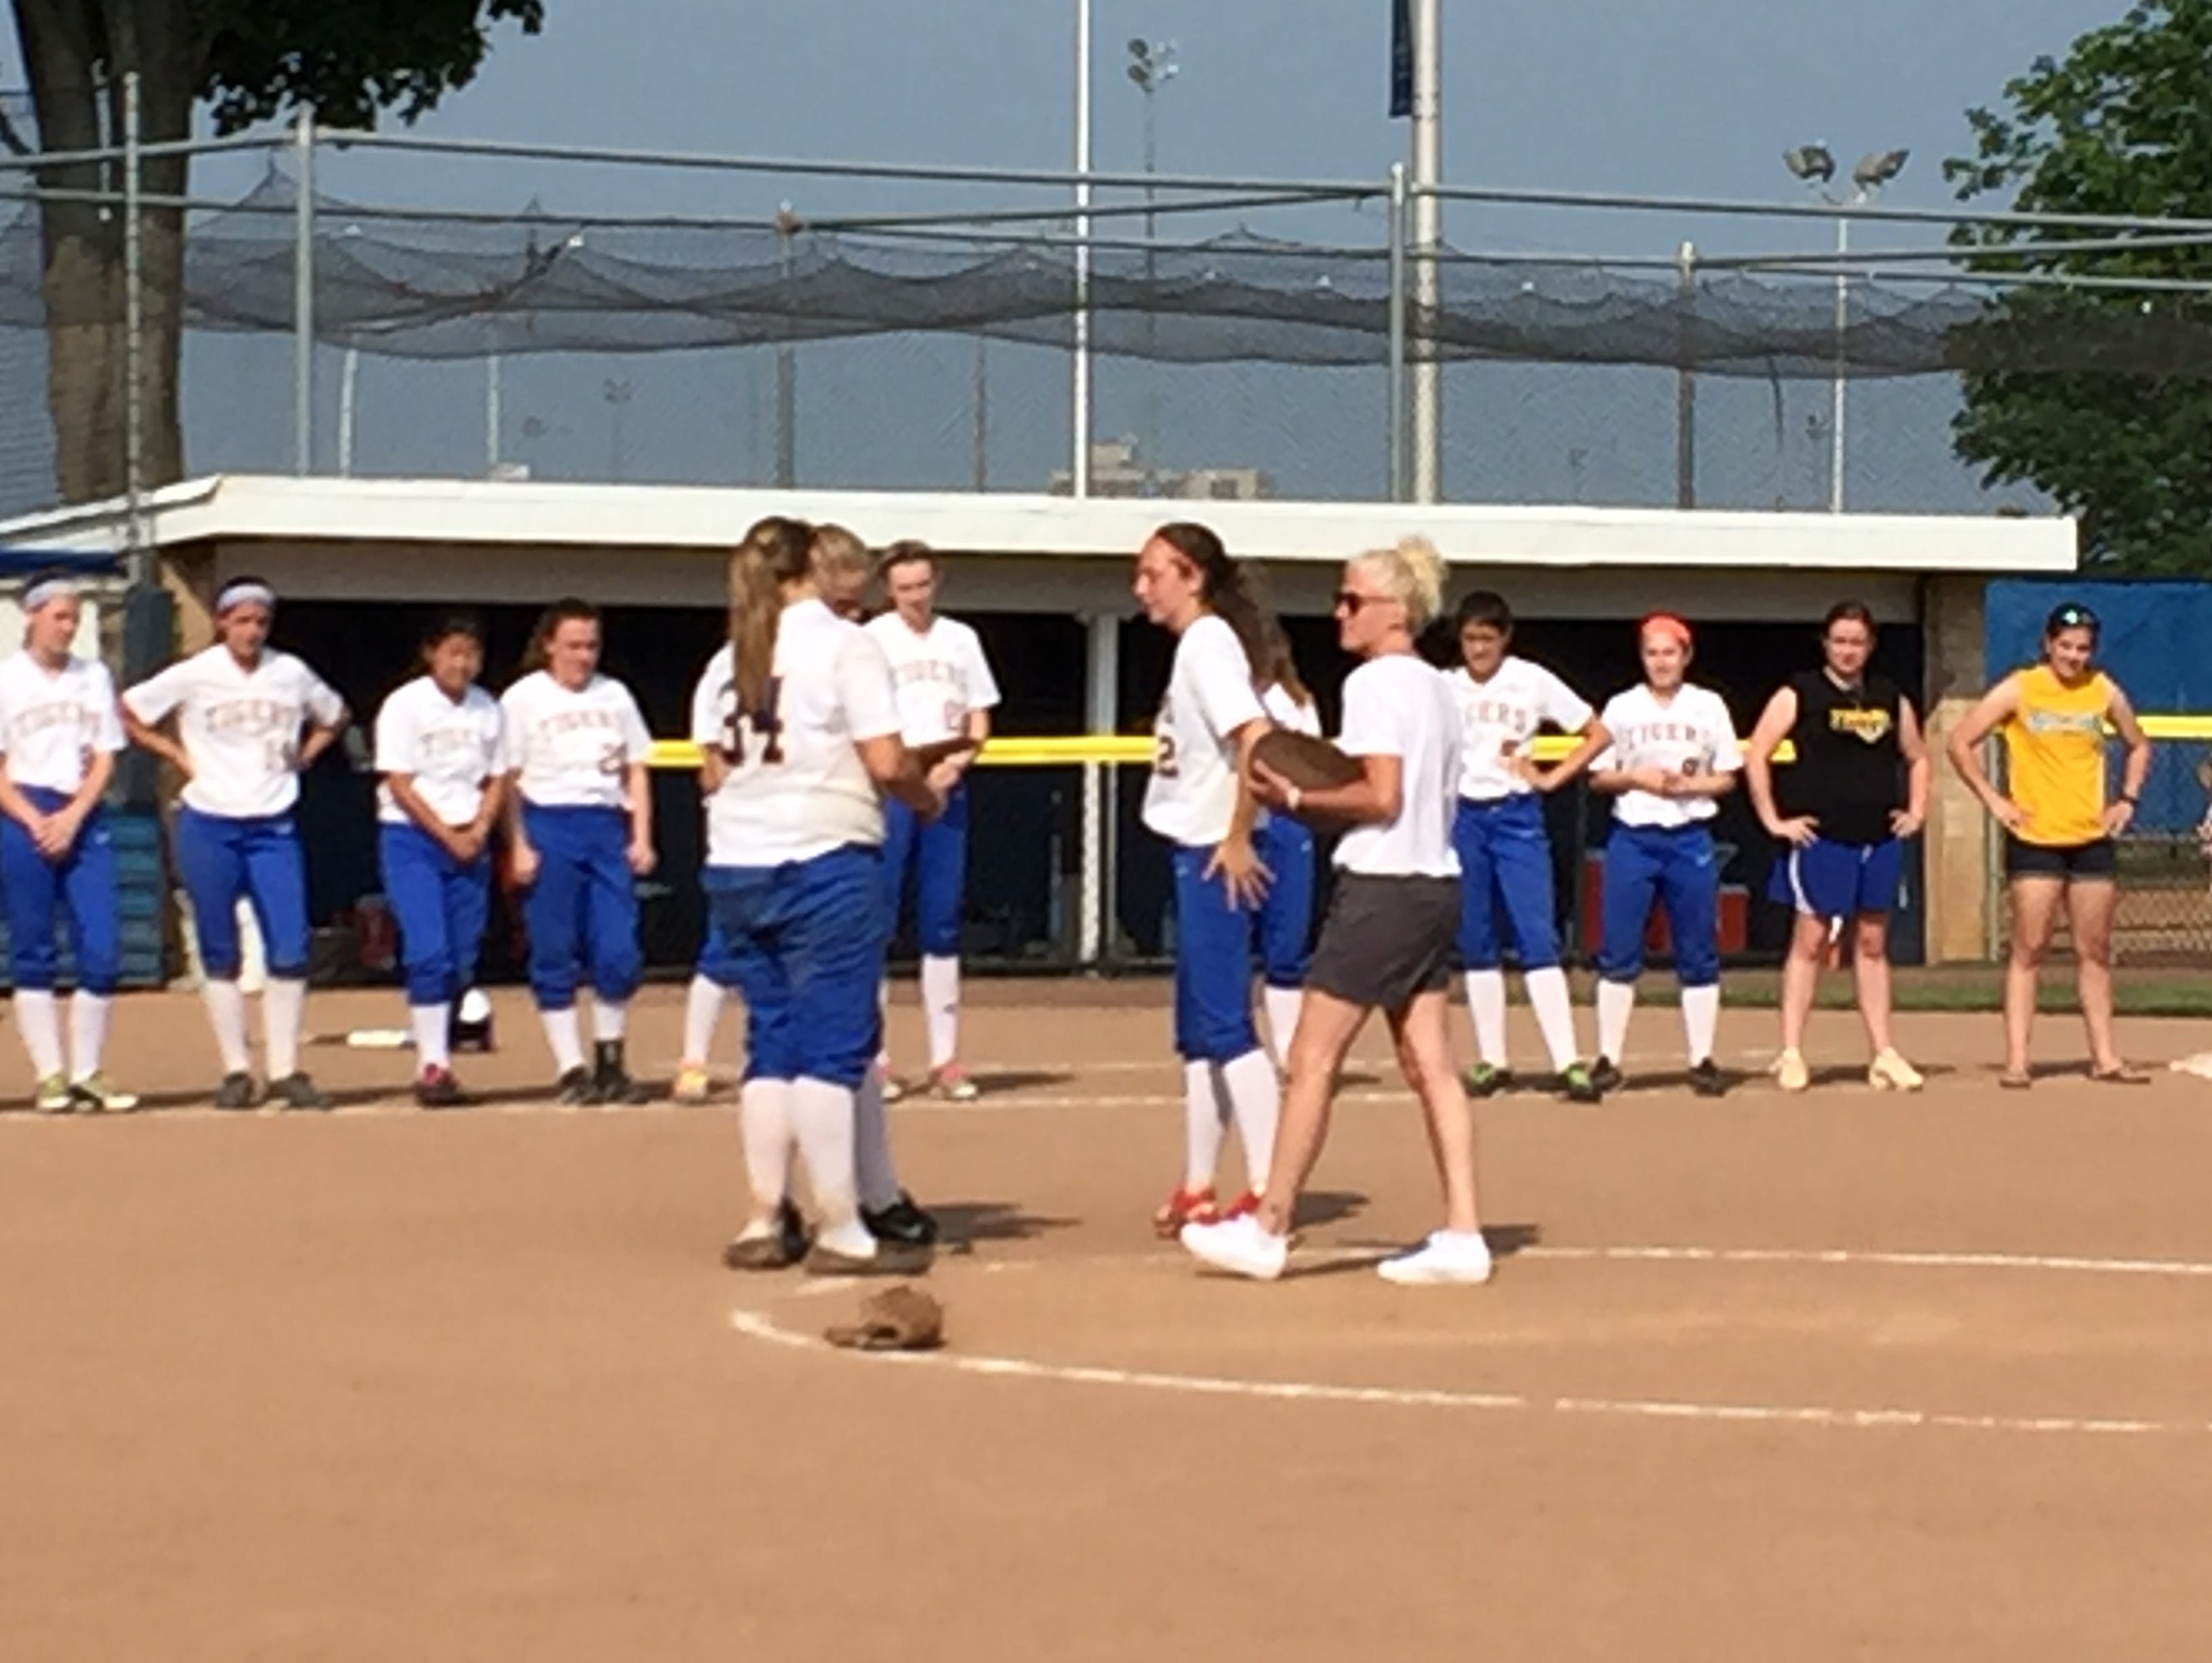 North Salem receives the runner up plaque as they lose to Section 8's East Rockaway 3-1 in the Class C softball regional final Saturday at Hofstra University